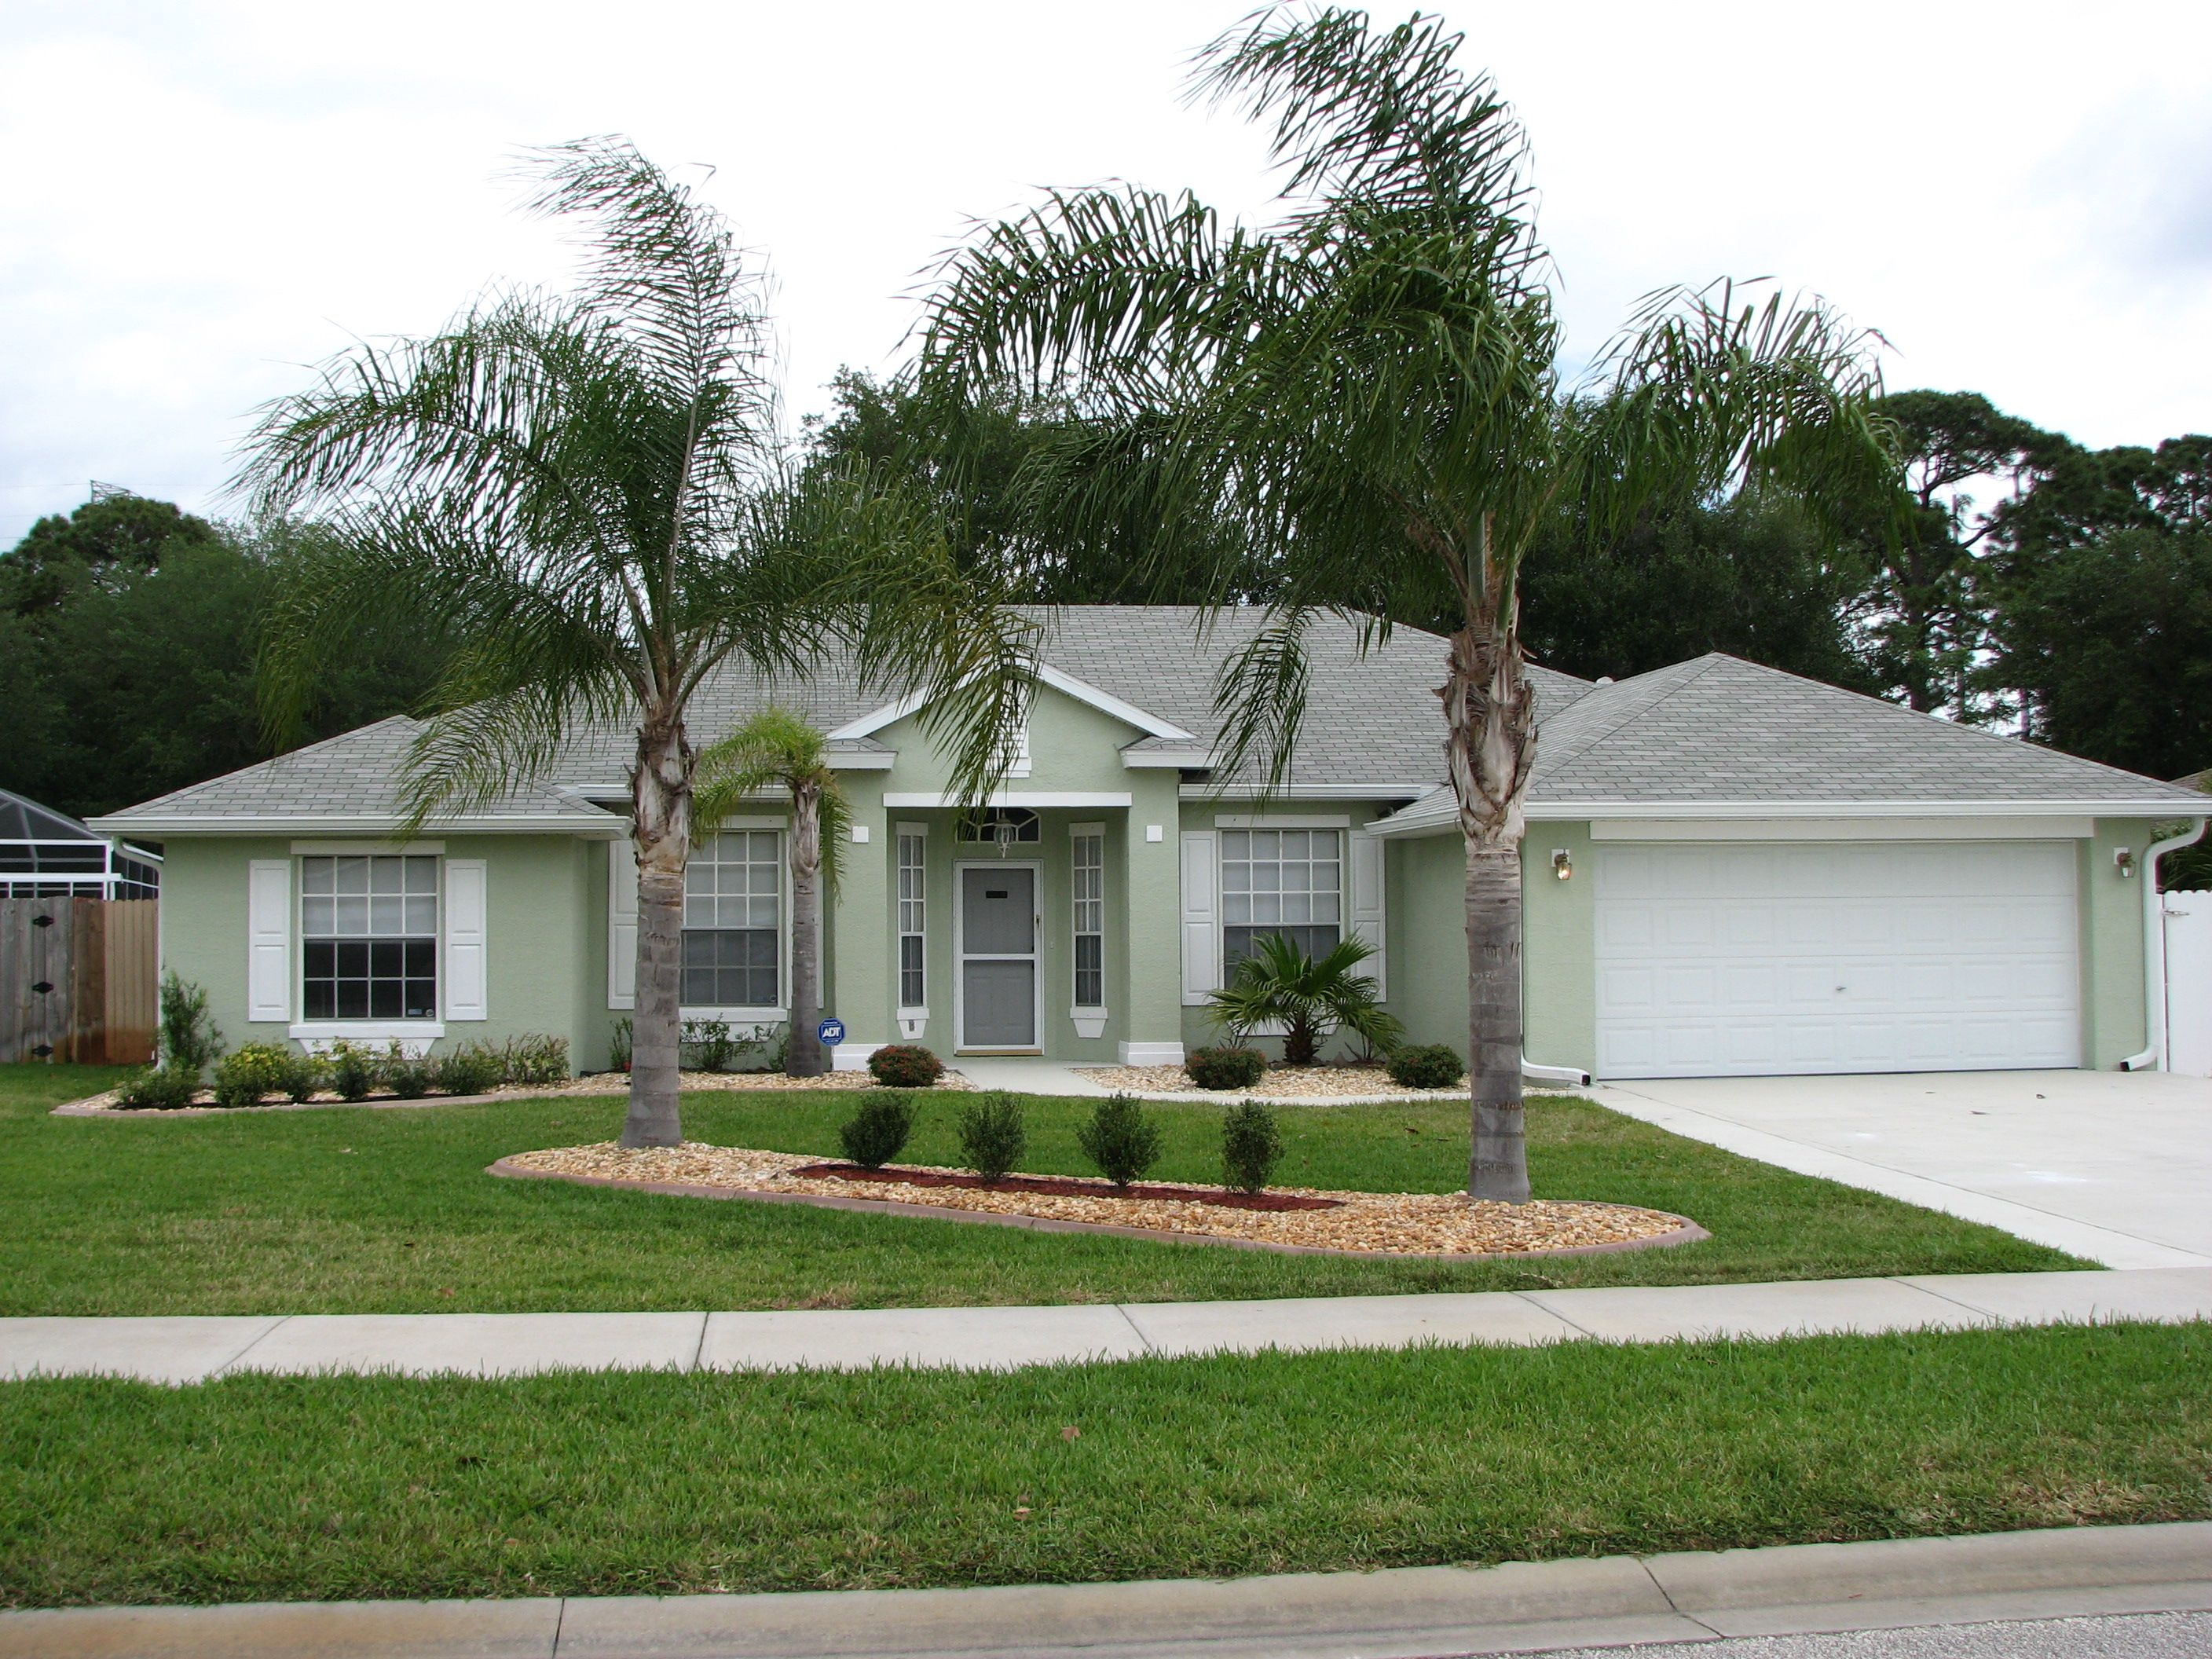 Exceptional Exterior Theydesign Exterior House Paint Colors With Florida Exterior  Paint Colors Tips On Choosing The Right Exterior Paint Colors For Florida  ...